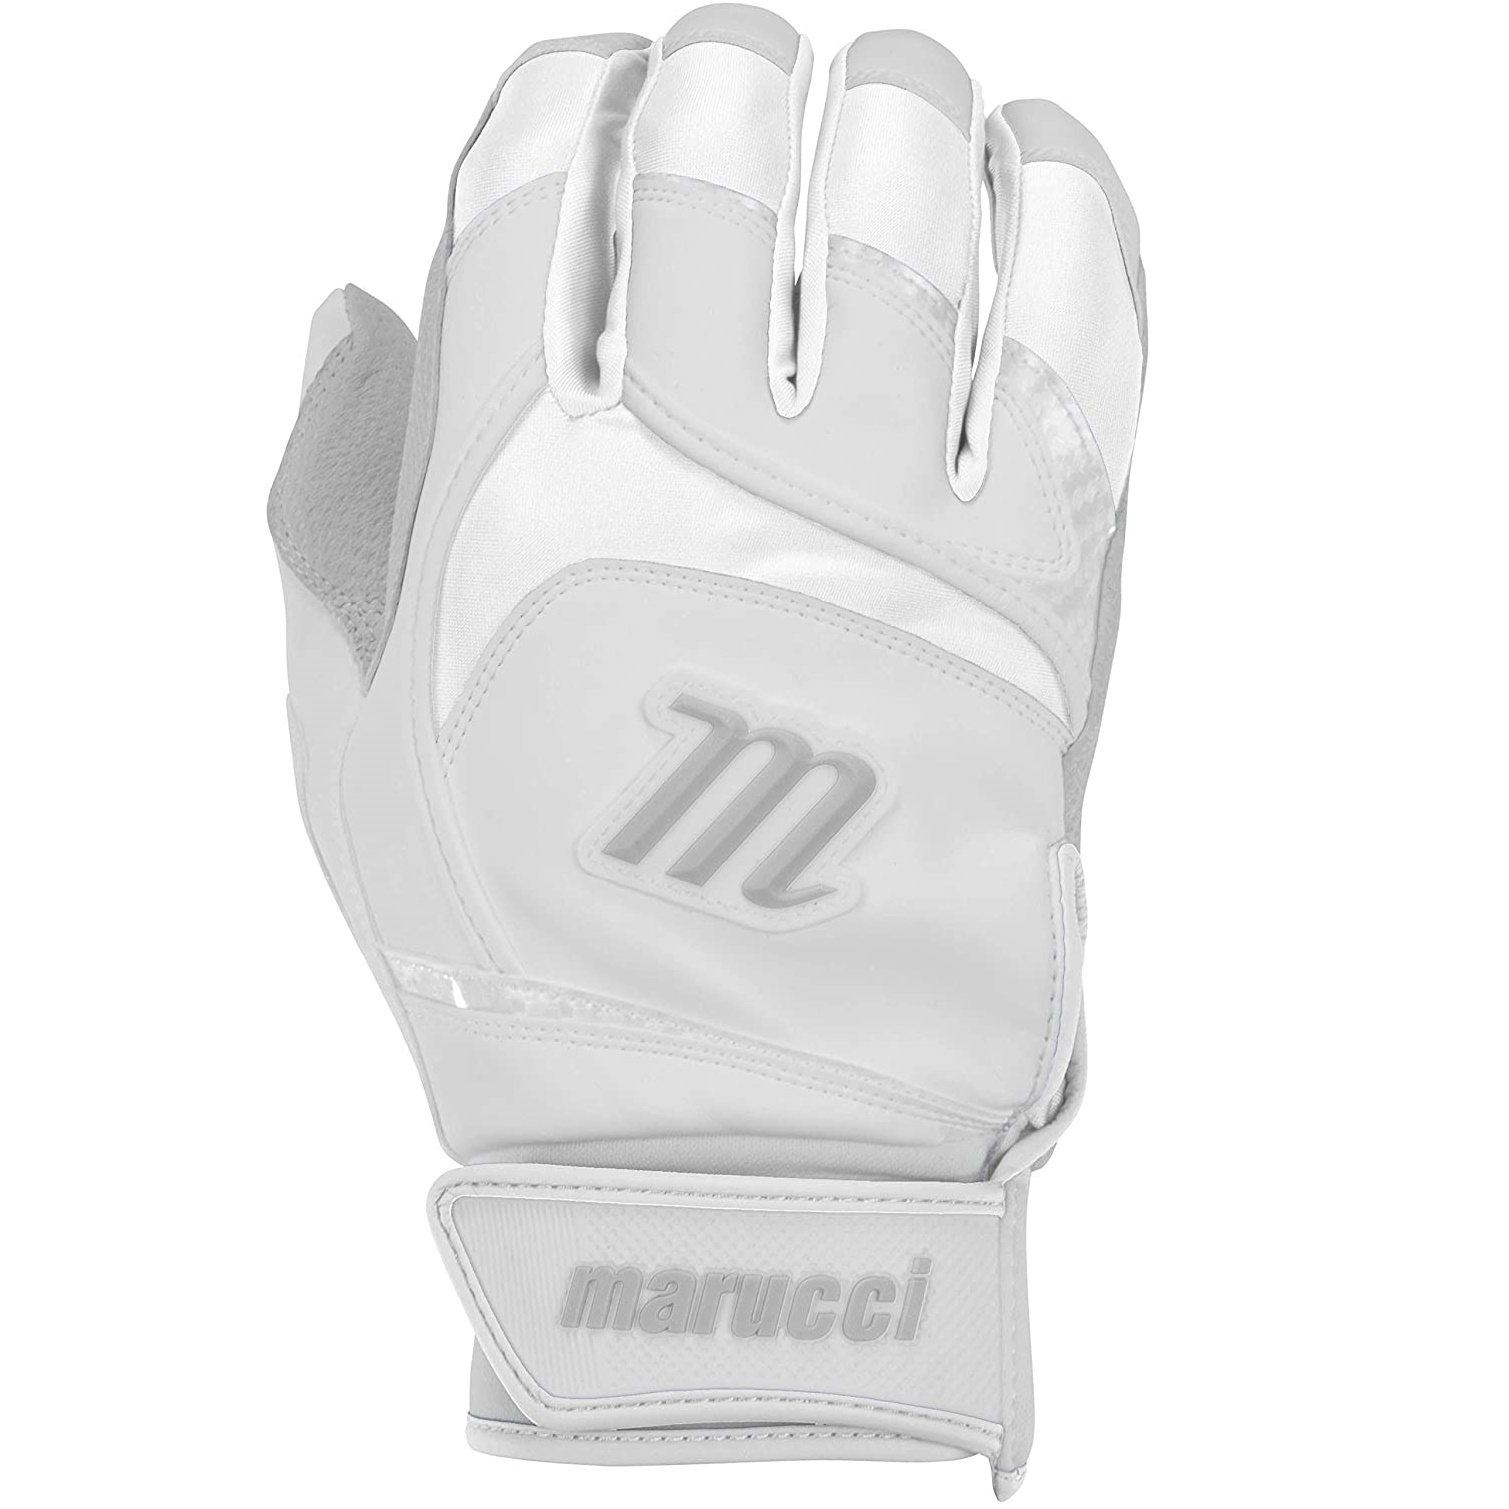 marucci-signature-youth-batting-gloves-white-youth-small MBGSGN2Y-WW-YS Marucci  Digitally embossed perforated Cabretta sheepskin palm provides maximum grip and durability